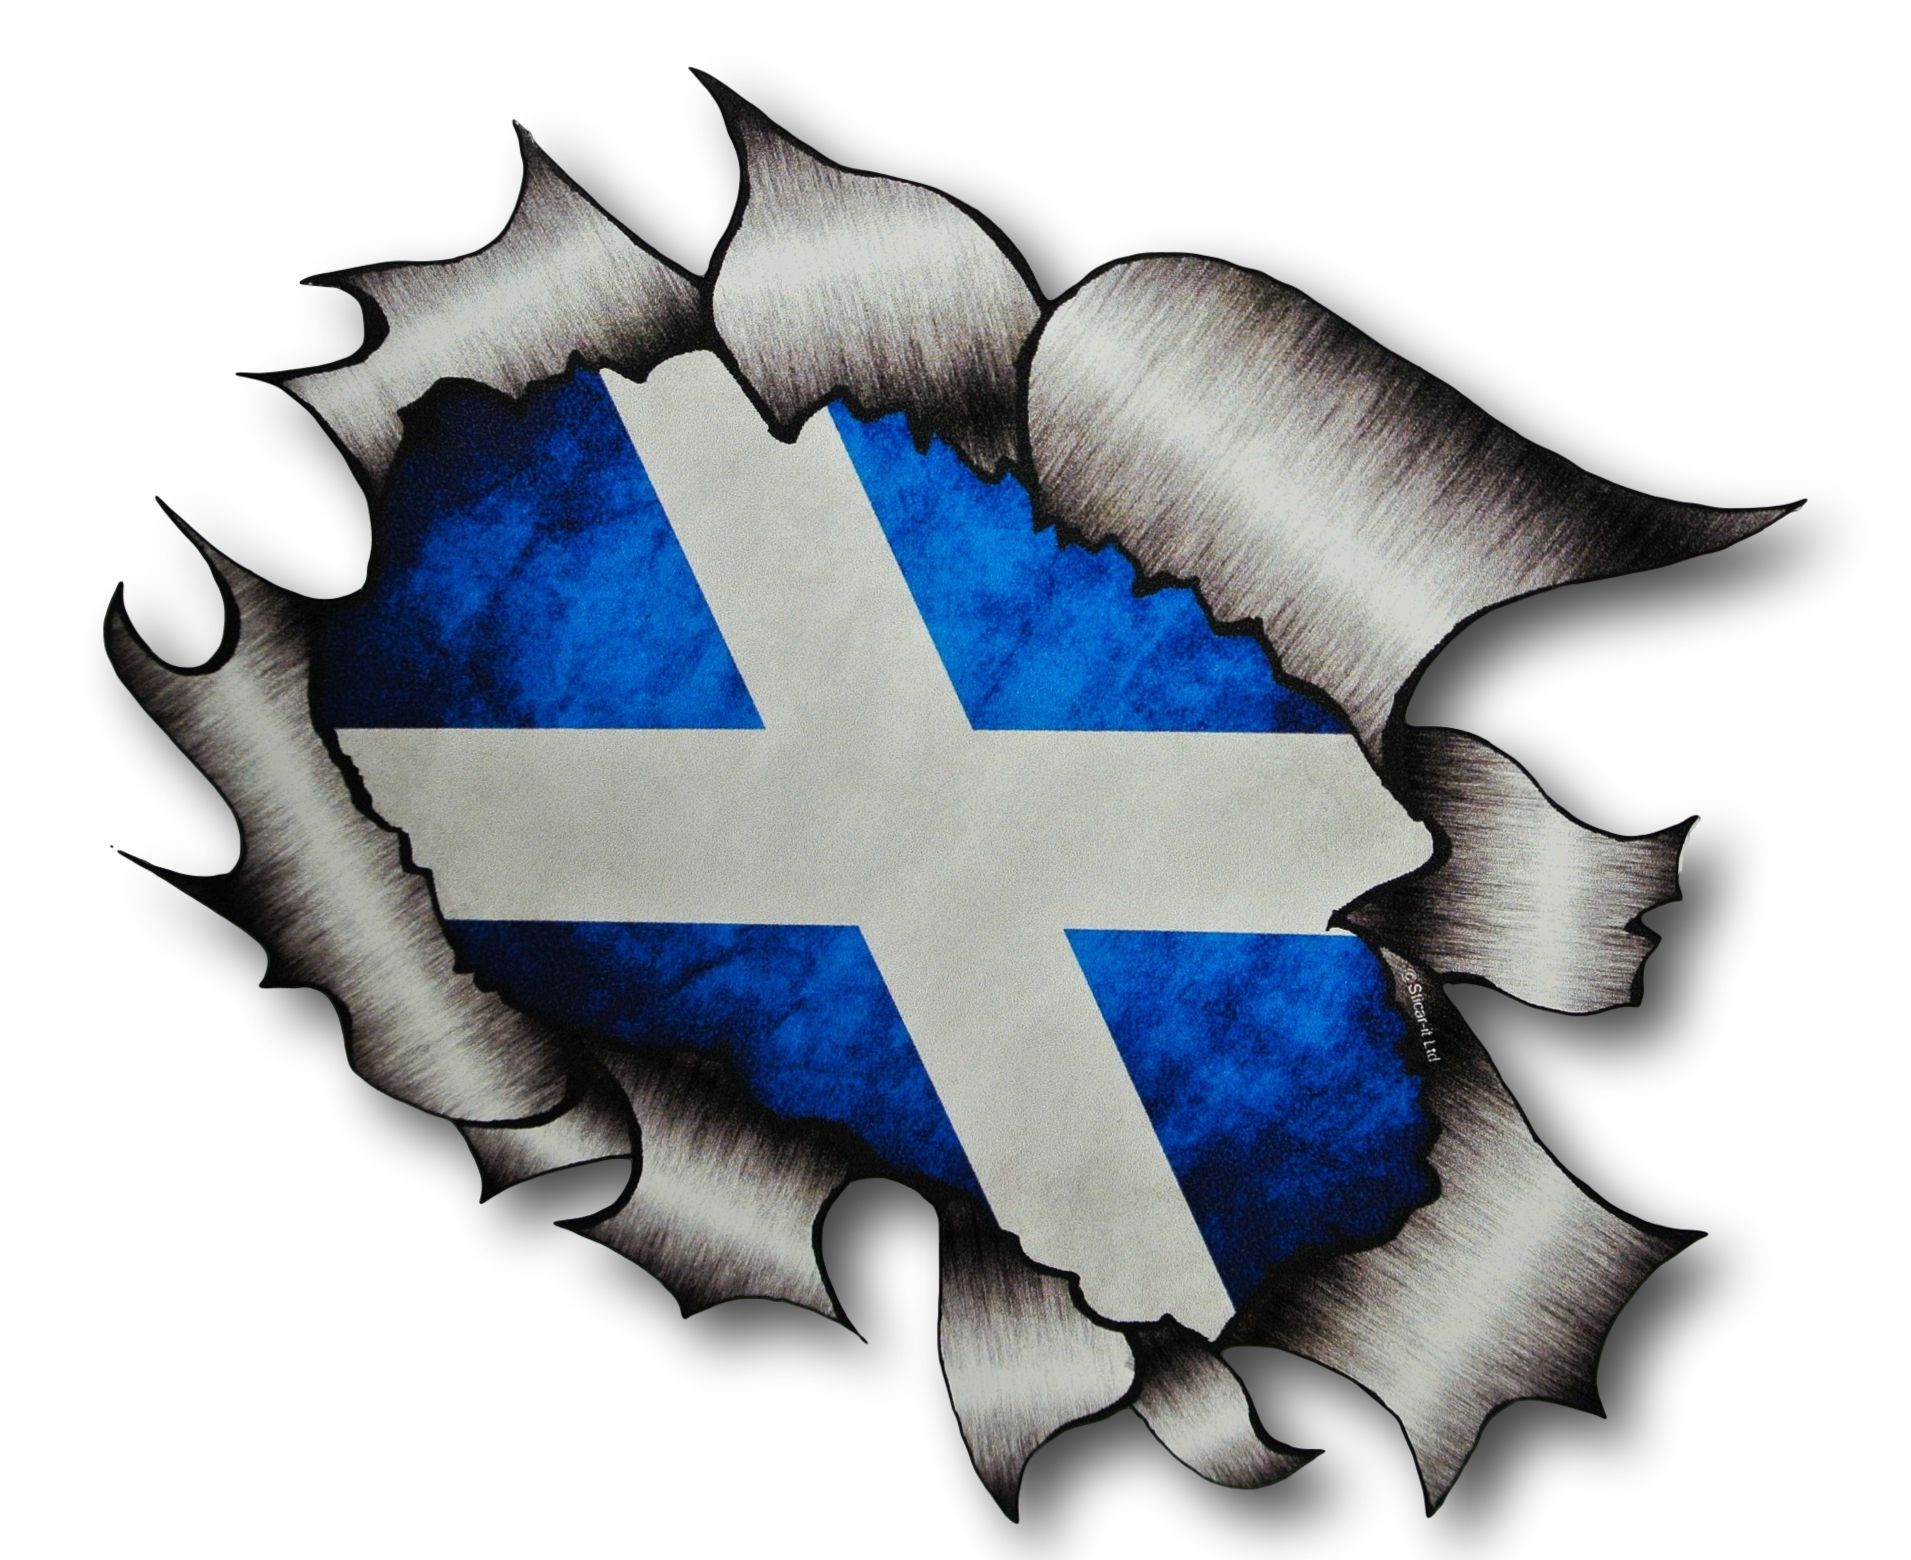 a4 size ripped torn metal design with scotland scottish saltire